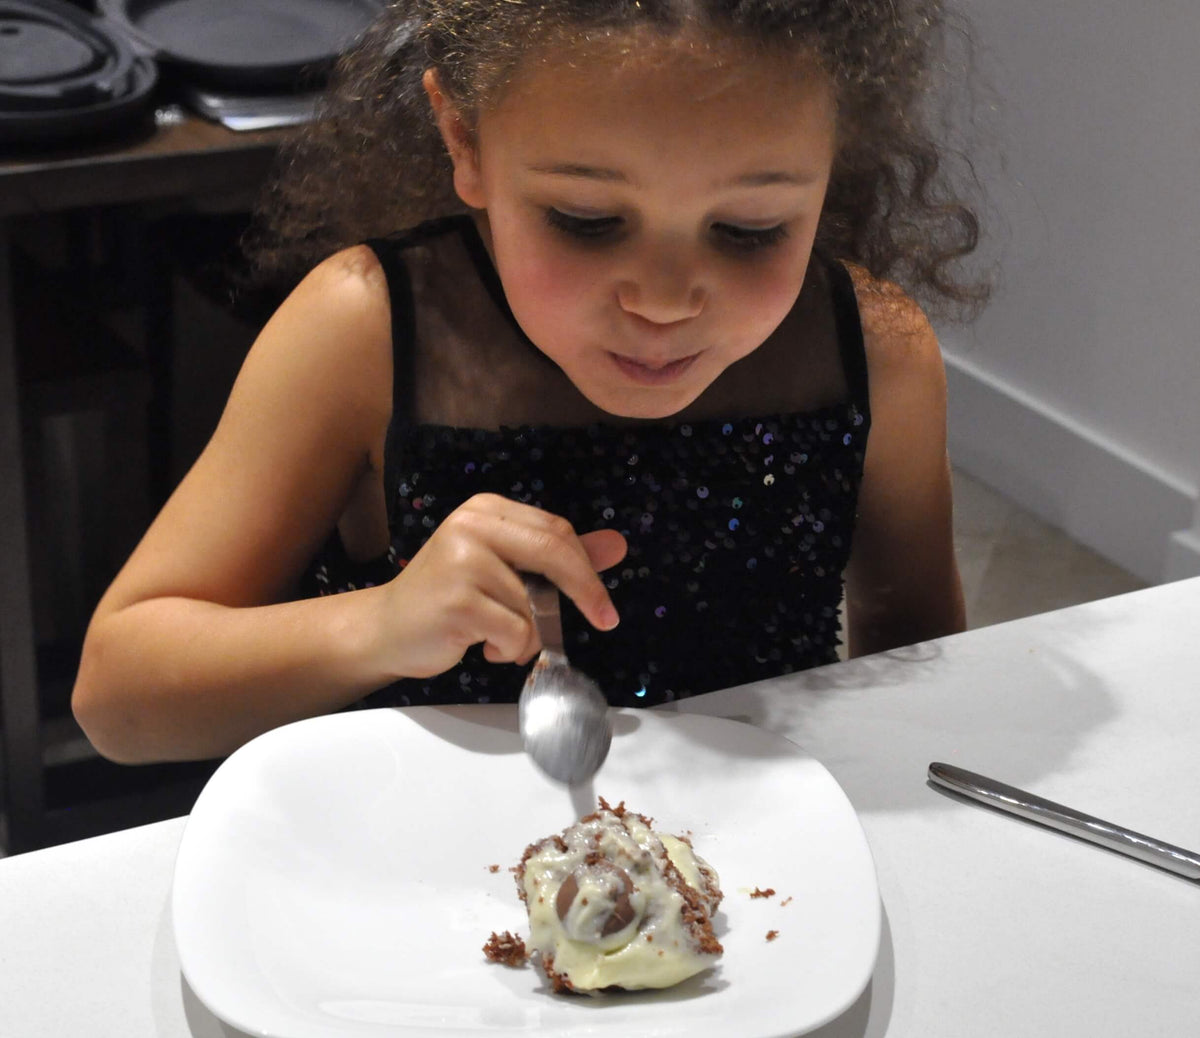 Girl eating a soulcialize's gluten free cake